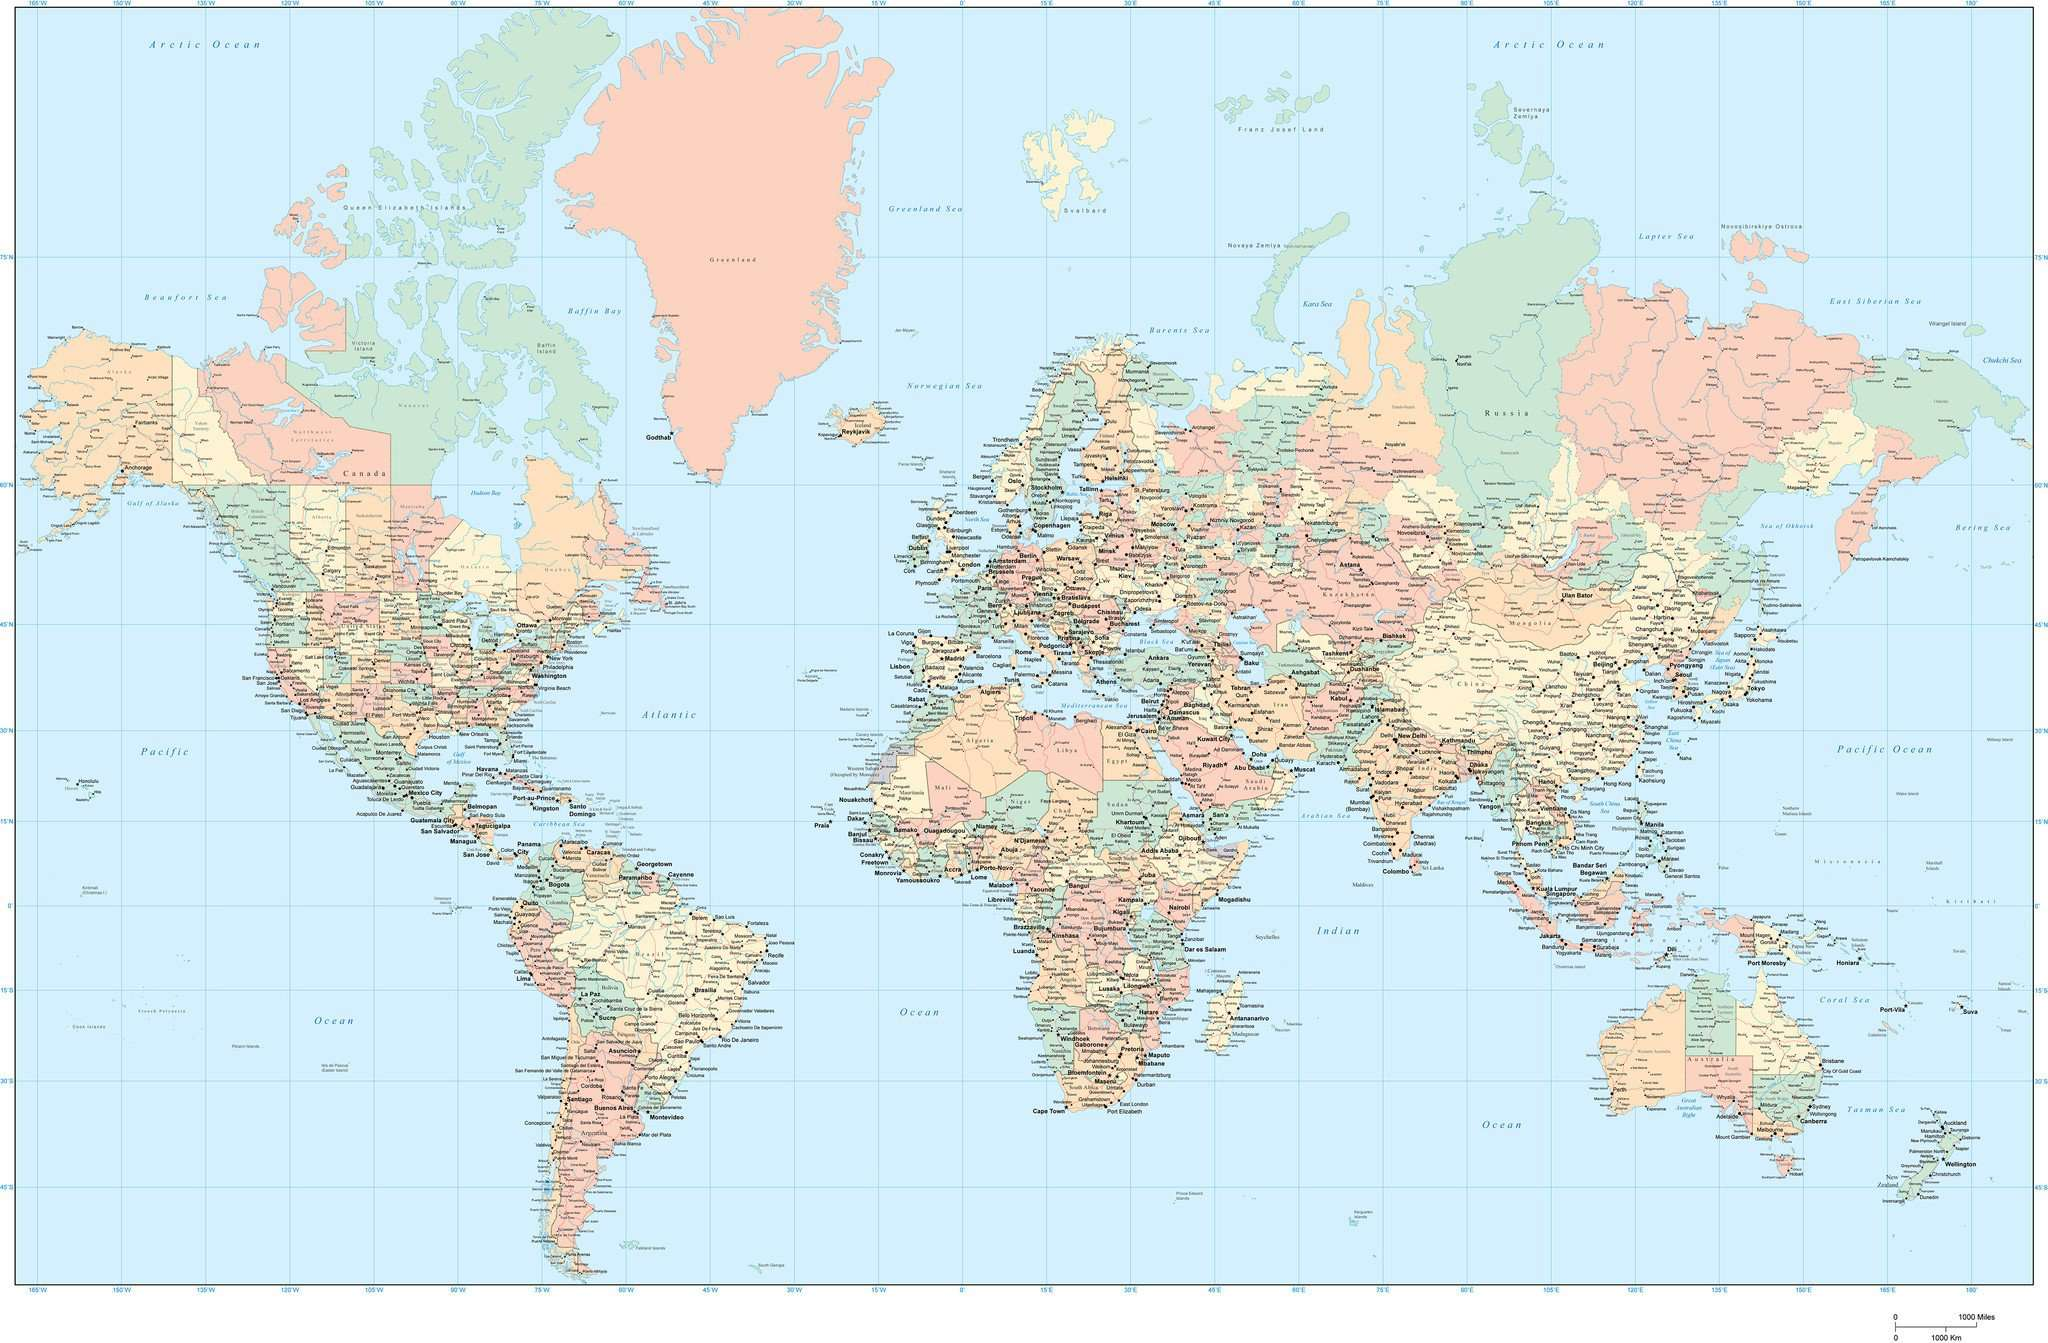 World Adobe Illustrator map with states and provinces Map Resources